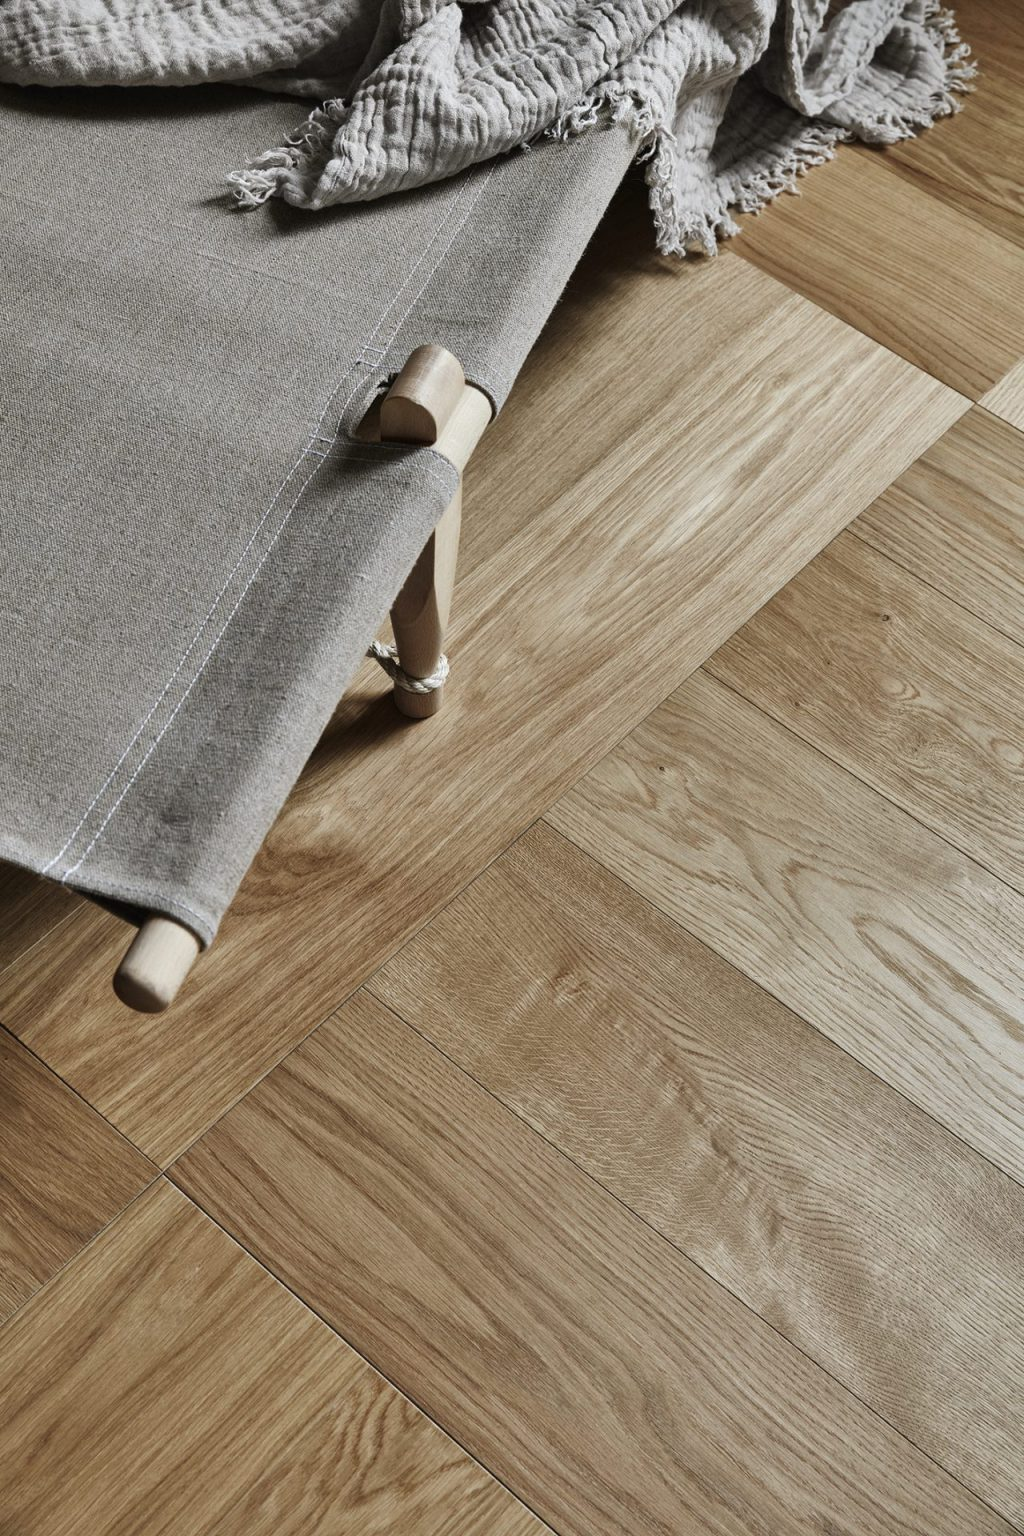 Timberwise – quality wooden floors from Finland for Timberwise by Susanna Vento